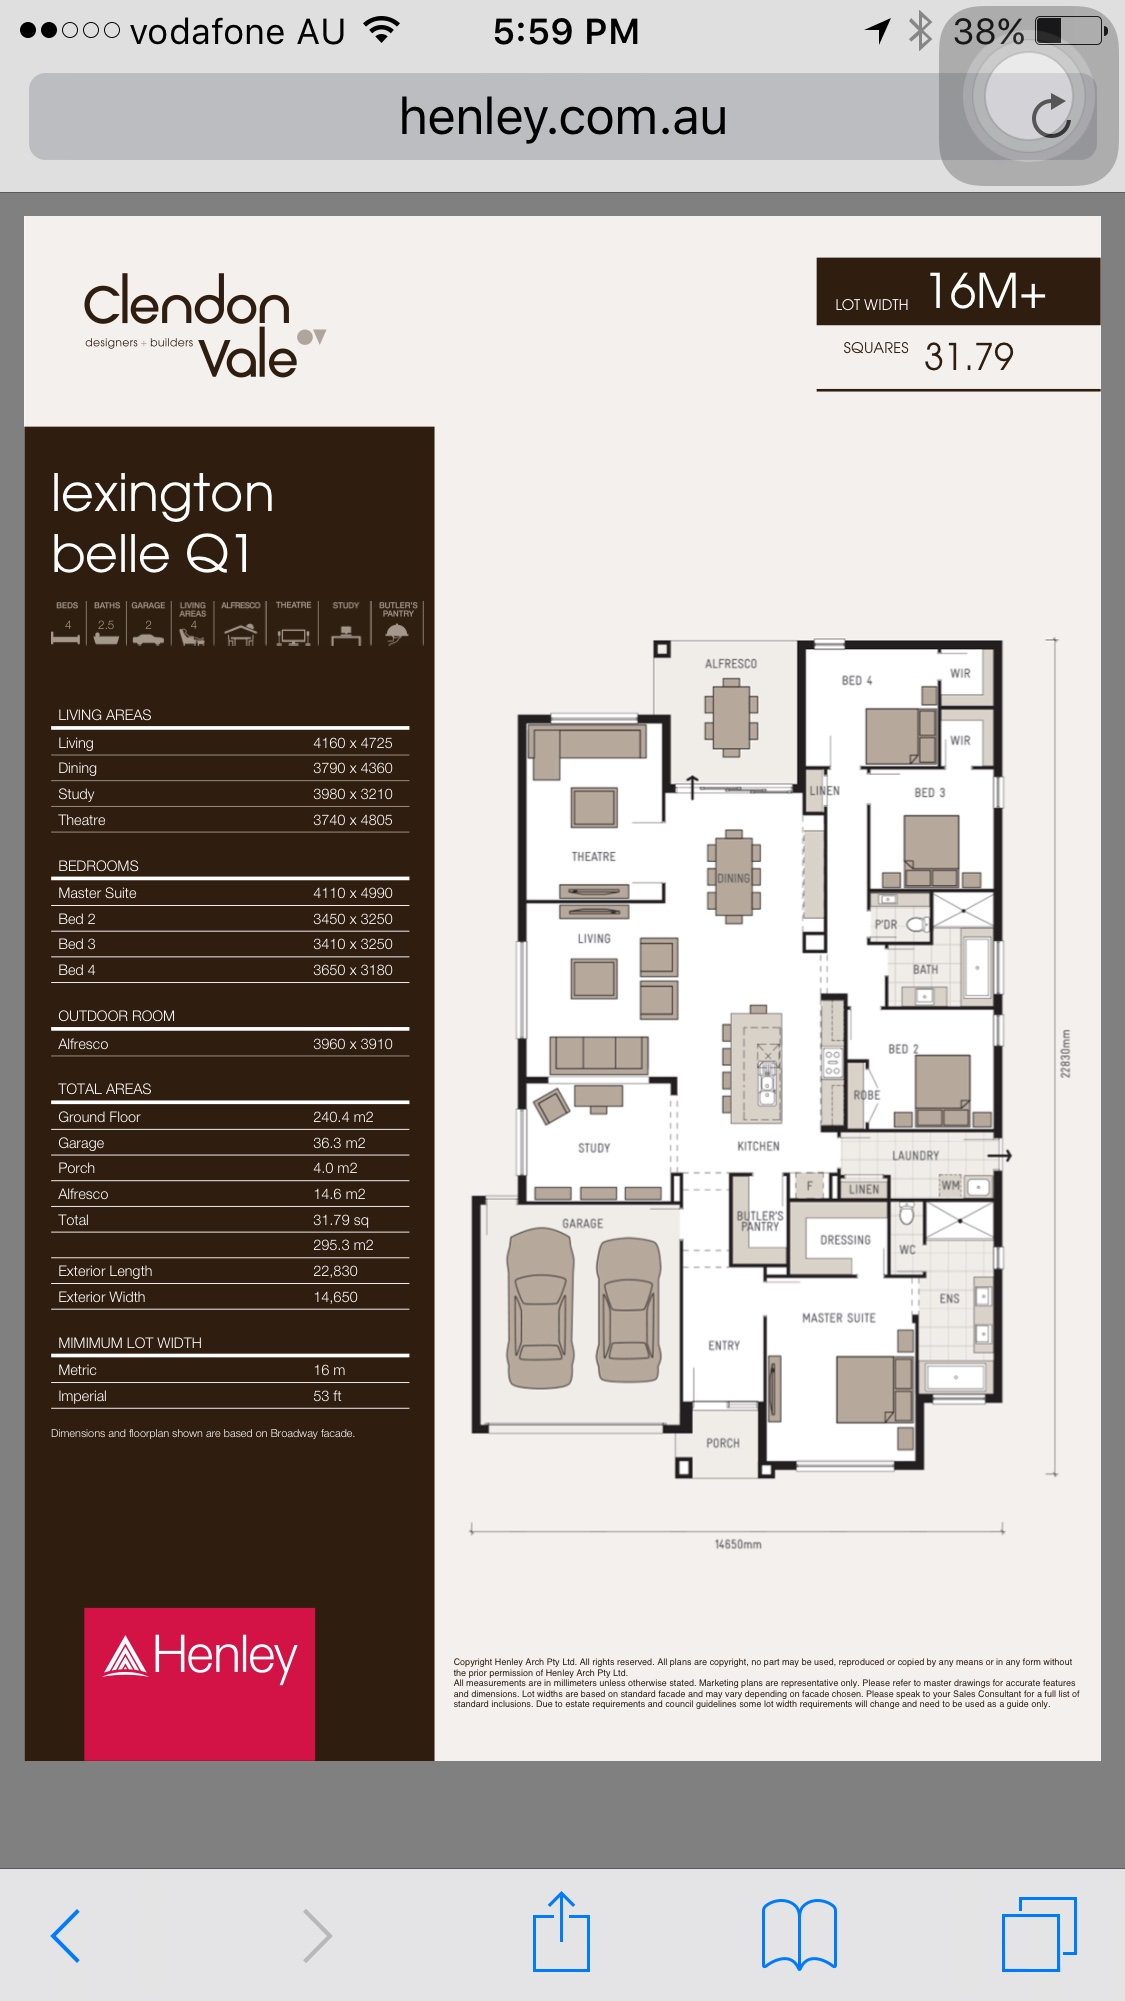 View topic - Our First Home - Lexington Belle Q1 by Henley in ...